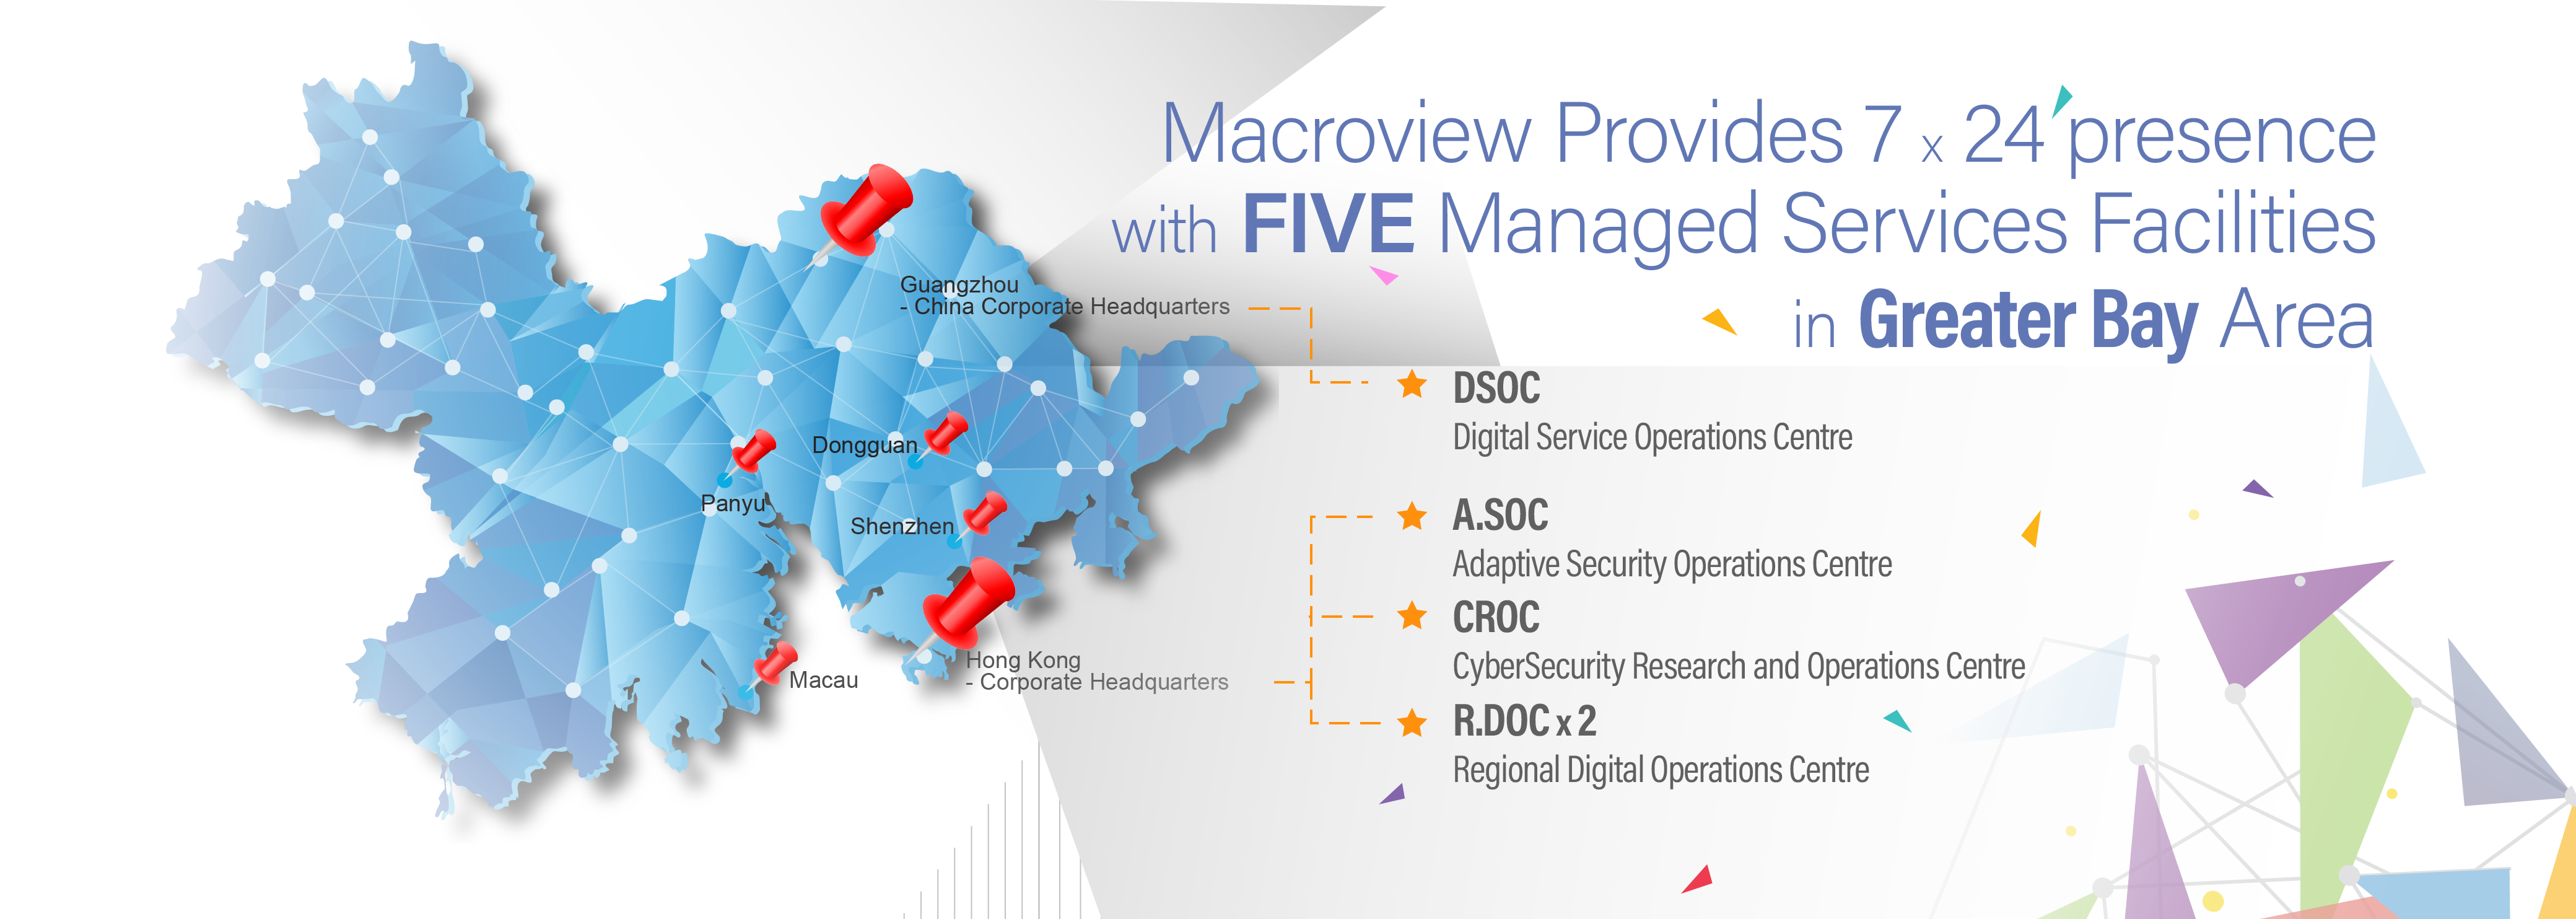 Macroview provides 7x24 presence with FIVE Managed Services Facilities in Greater Bay Area